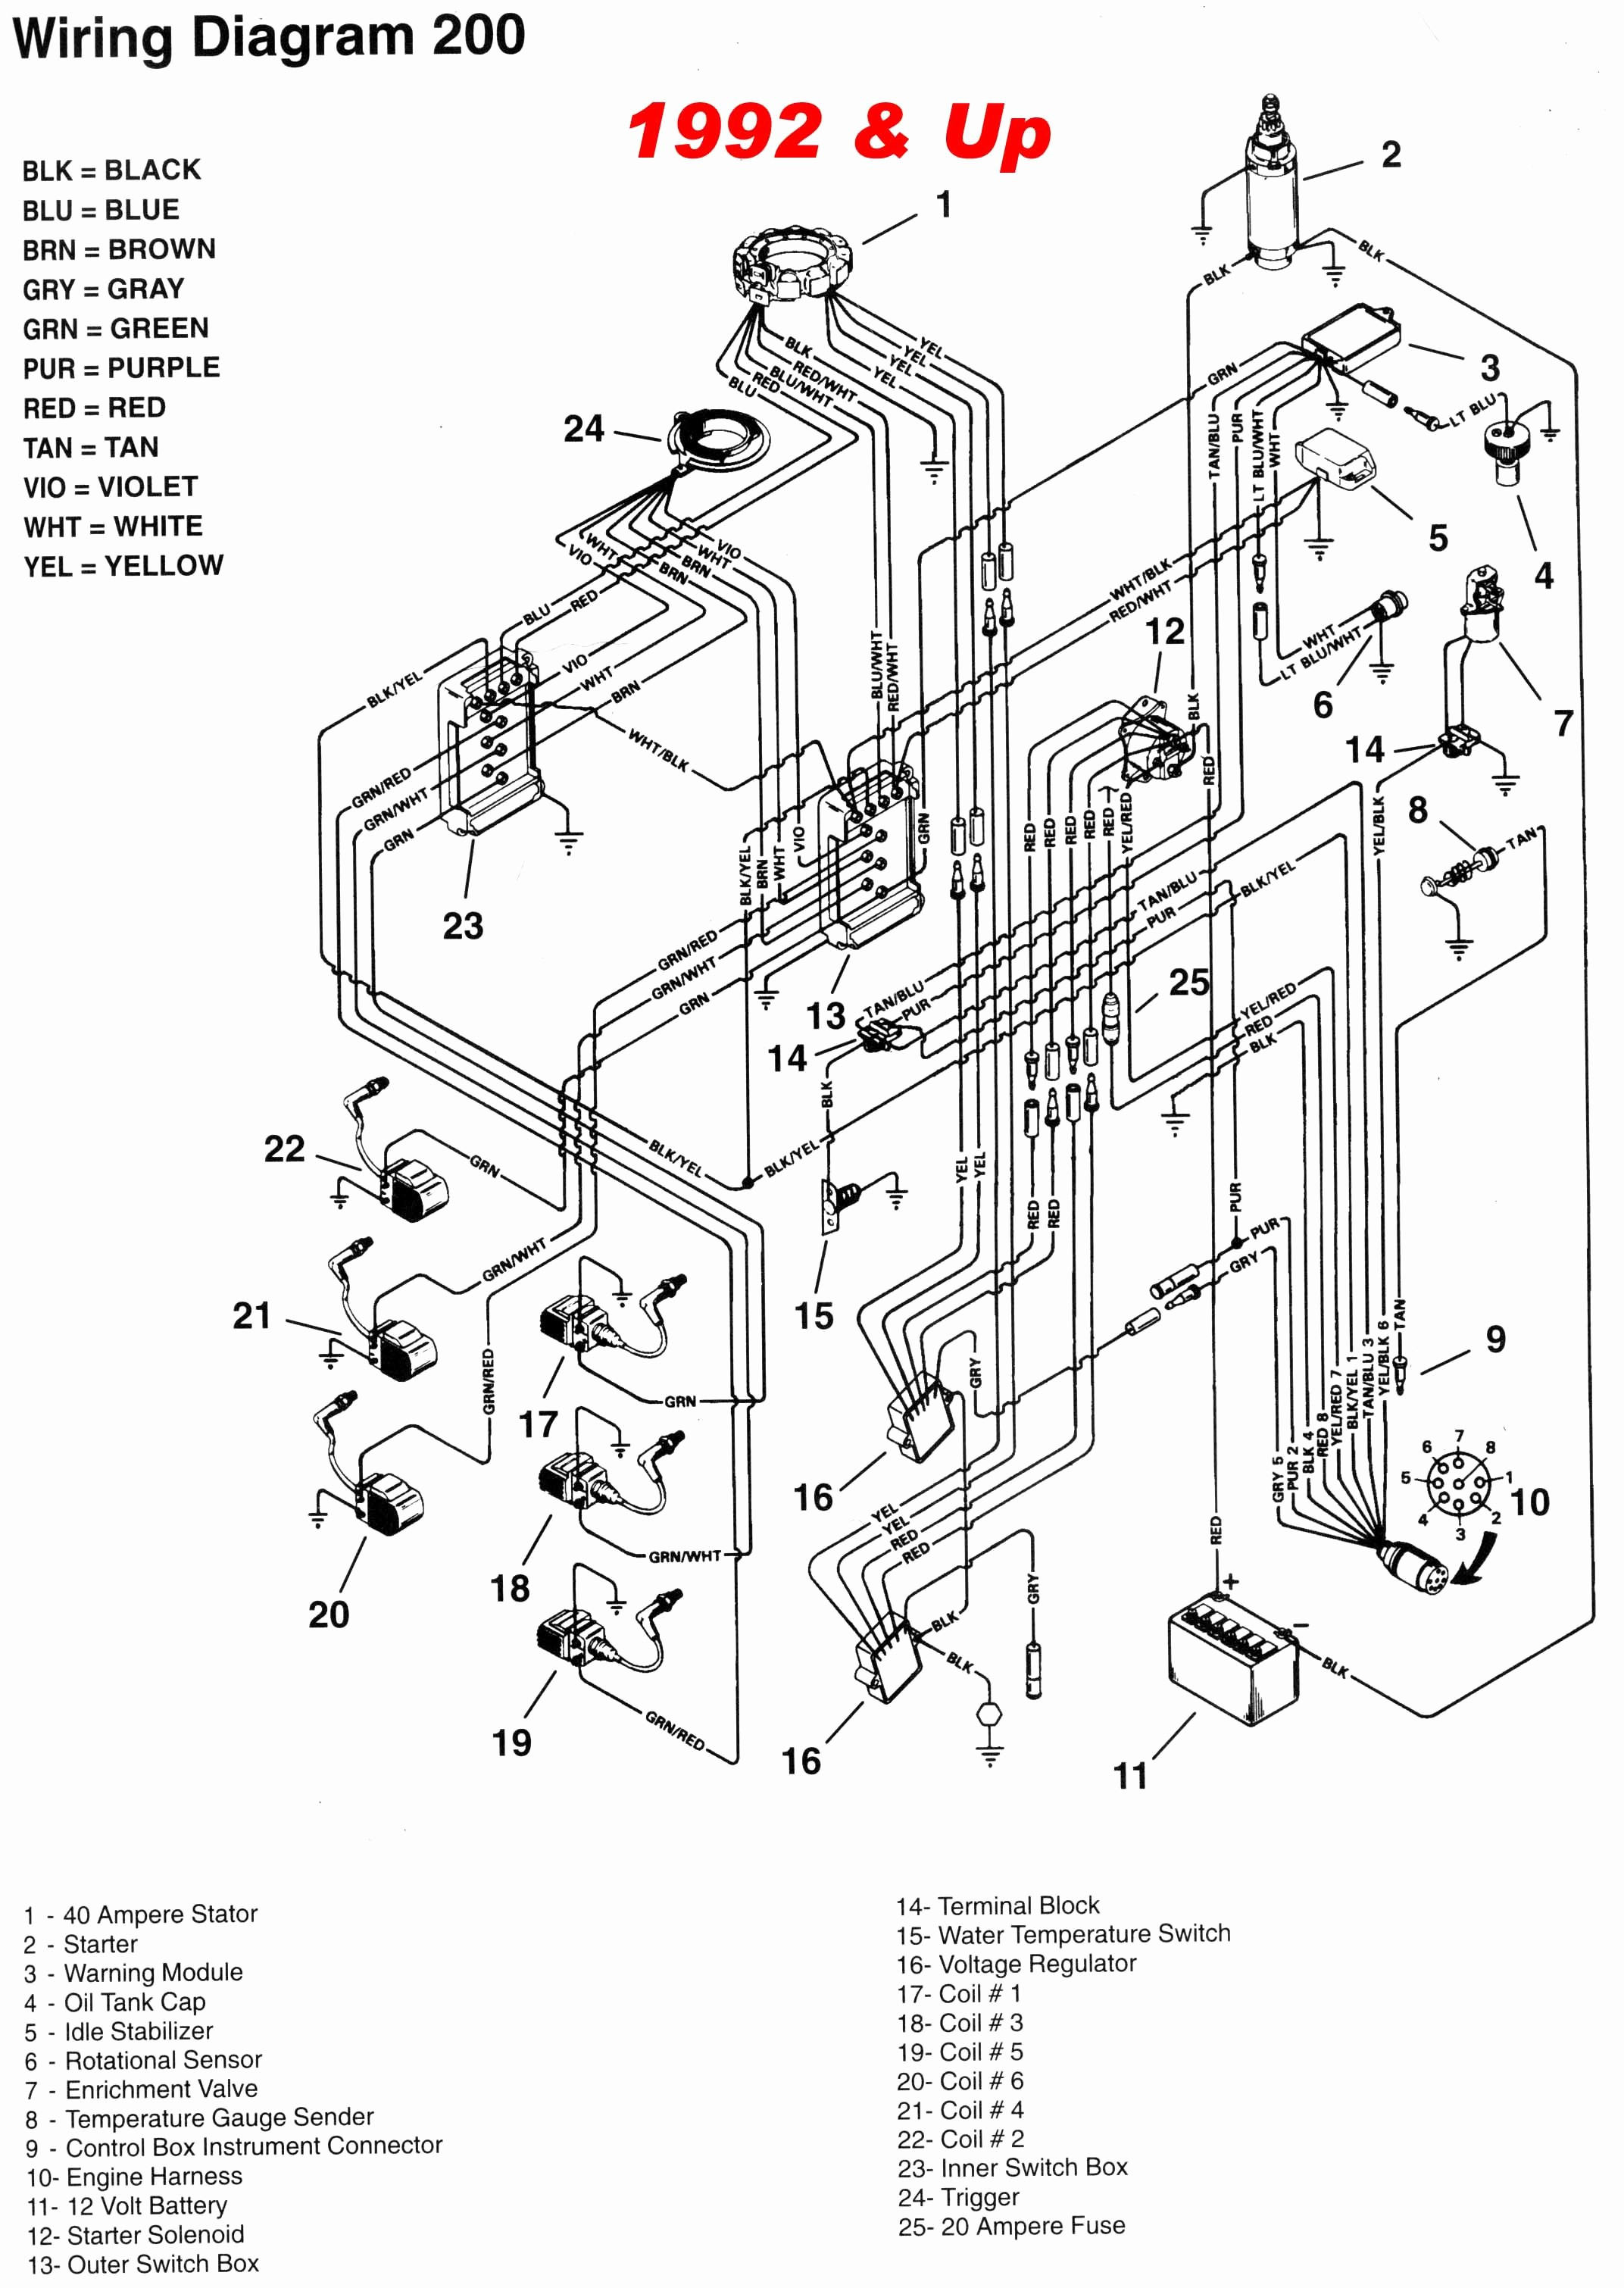 225 Hp Mercury Outboard Wiring Harness Diagram - Get Rid Of ... Wiring Diagram For A Tohatsu Tachometer on kawasaki wiring diagram, jeanneau wiring diagram, tomos wiring diagram, force wiring diagram, omc wiring diagram, norton wiring diagram, john deere wiring diagram, trojan wiring diagram, honda wiring diagram, seaswirl wiring diagram, centurion wiring diagram, rex wiring diagram, johnson wiring diagram, sears wiring diagram, evinrude etec wiring diagram, toyota wiring diagram, nissan wiring diagram, viking wiring diagram, hunter wiring diagram, northstar wiring diagram,